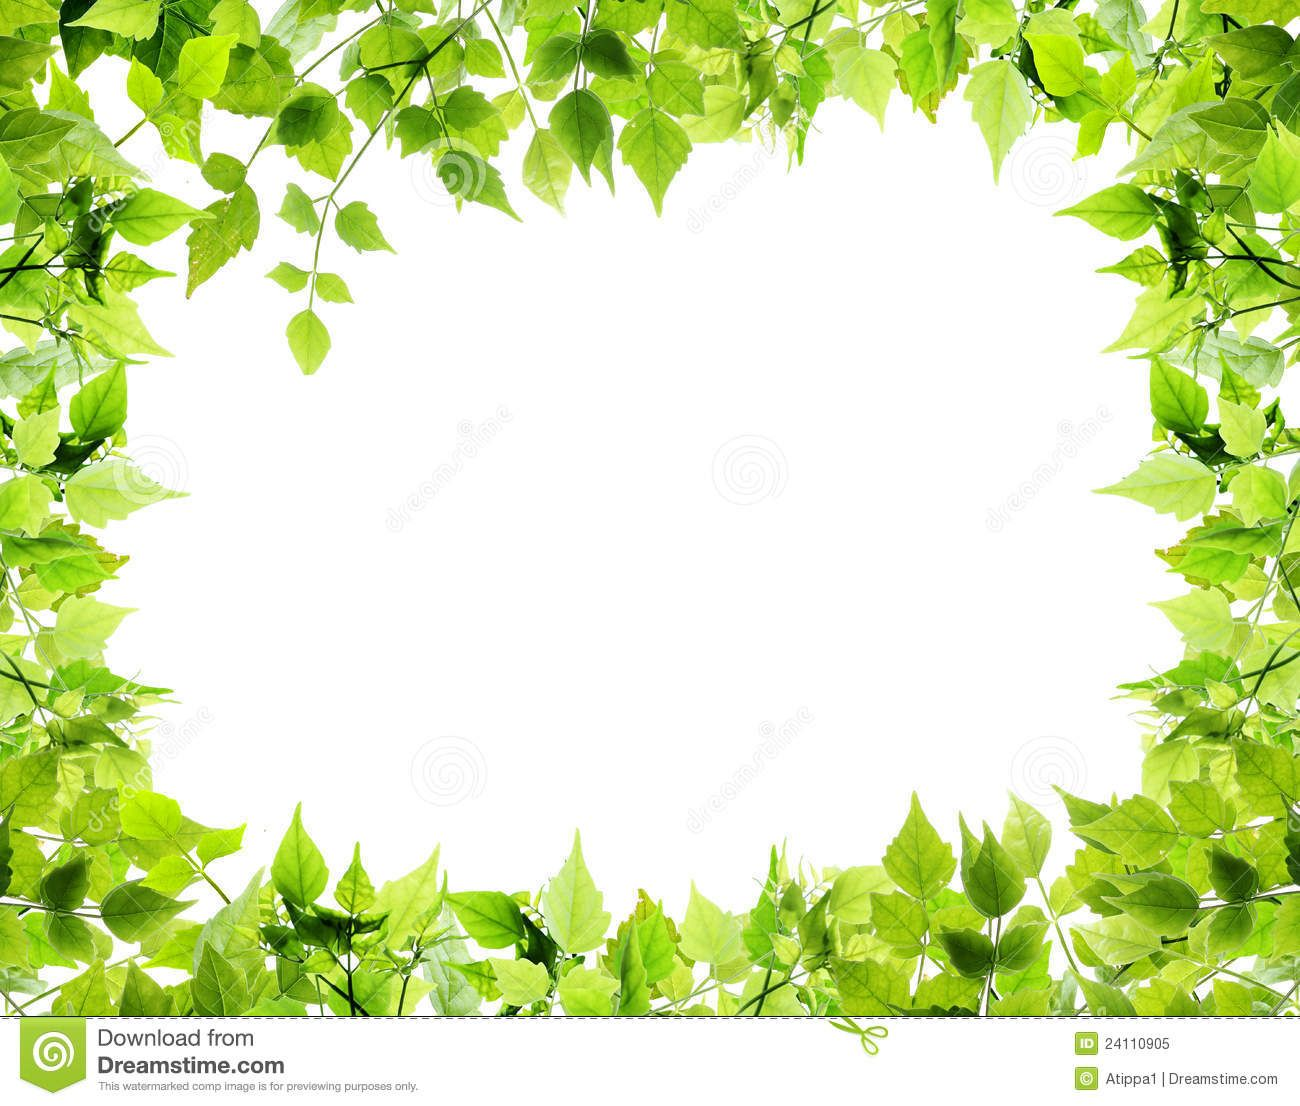 Natural Leaves Border Stock Image Image Of Floral Decorate 24110905 Leaf Nature Leaf Border Leaf Images